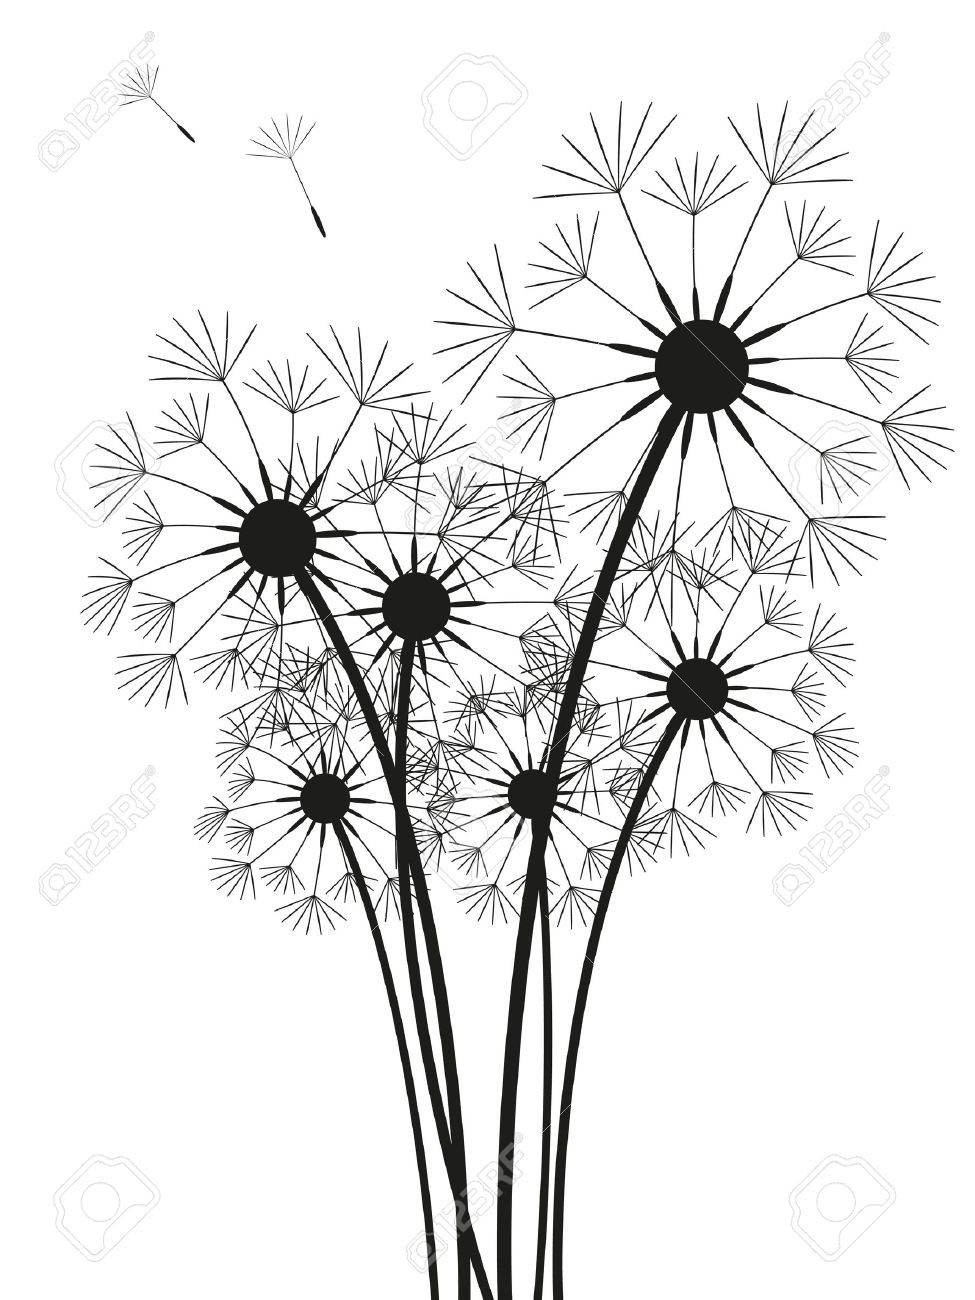 Dandelion Black And White Drawing at PaintingValley.com.